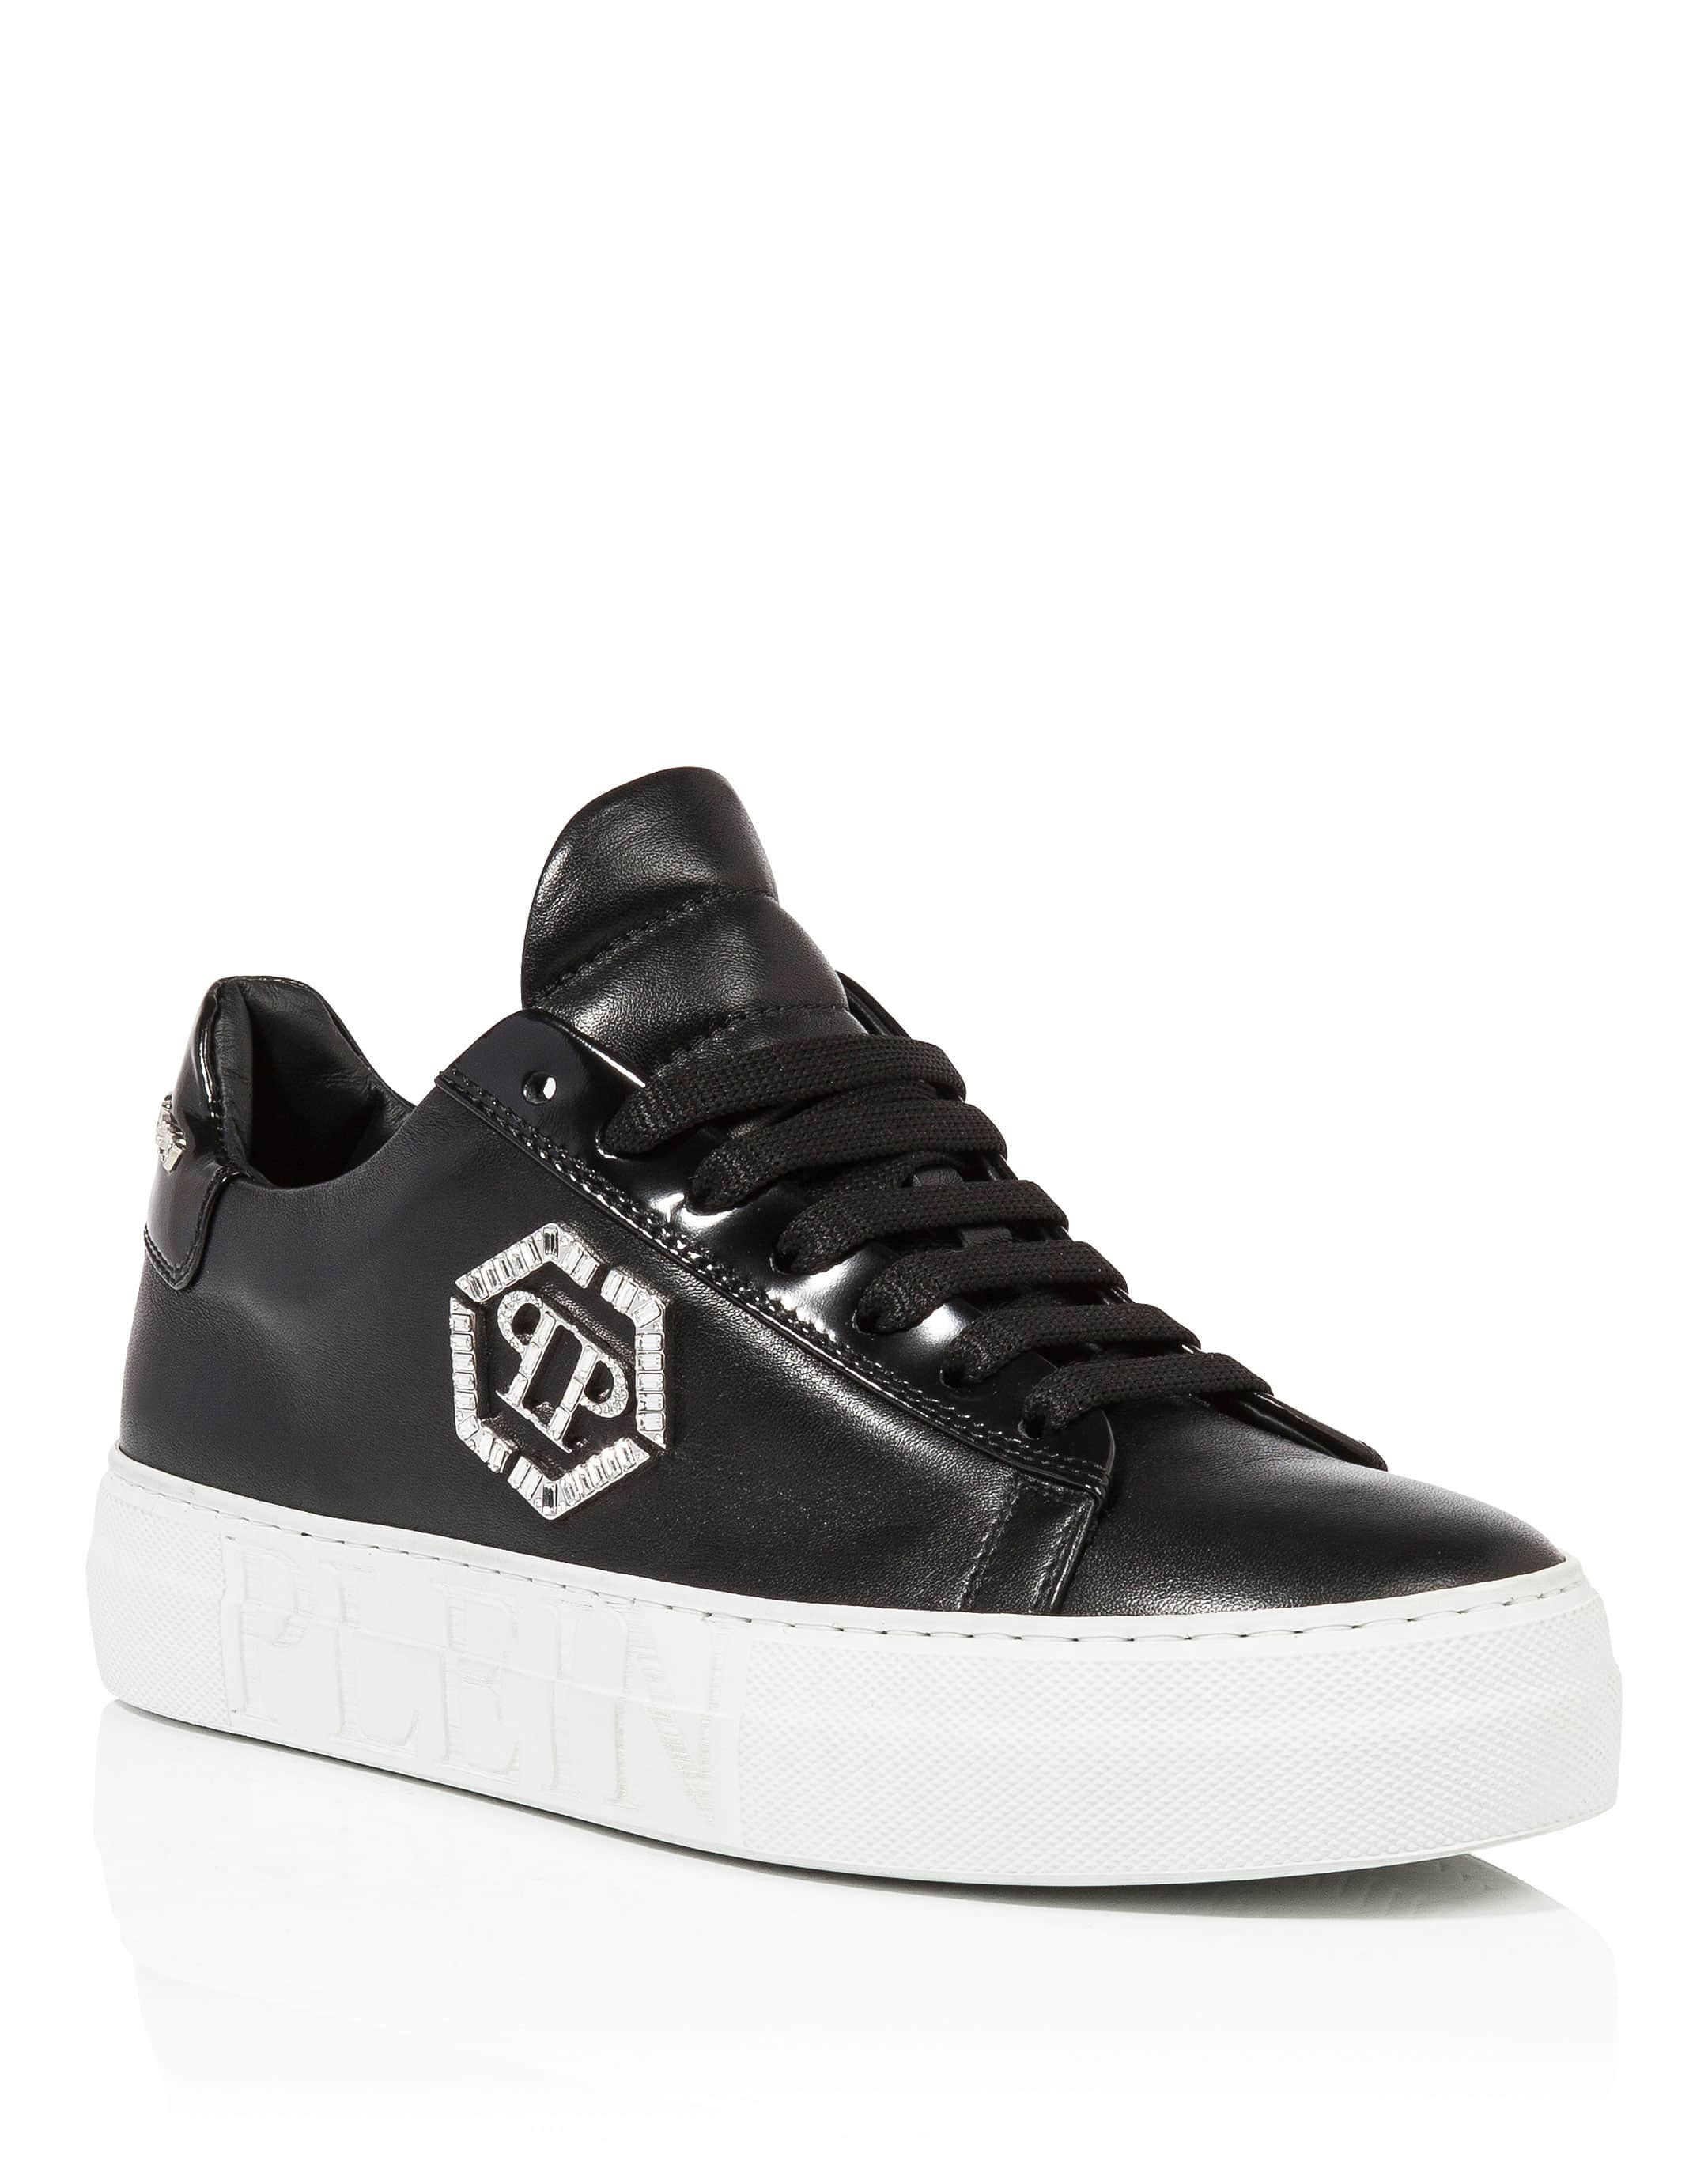 Philipp Plein Cindy sneakers with credit card sale online sale Inexpensive manchester great sale 0LOBJy